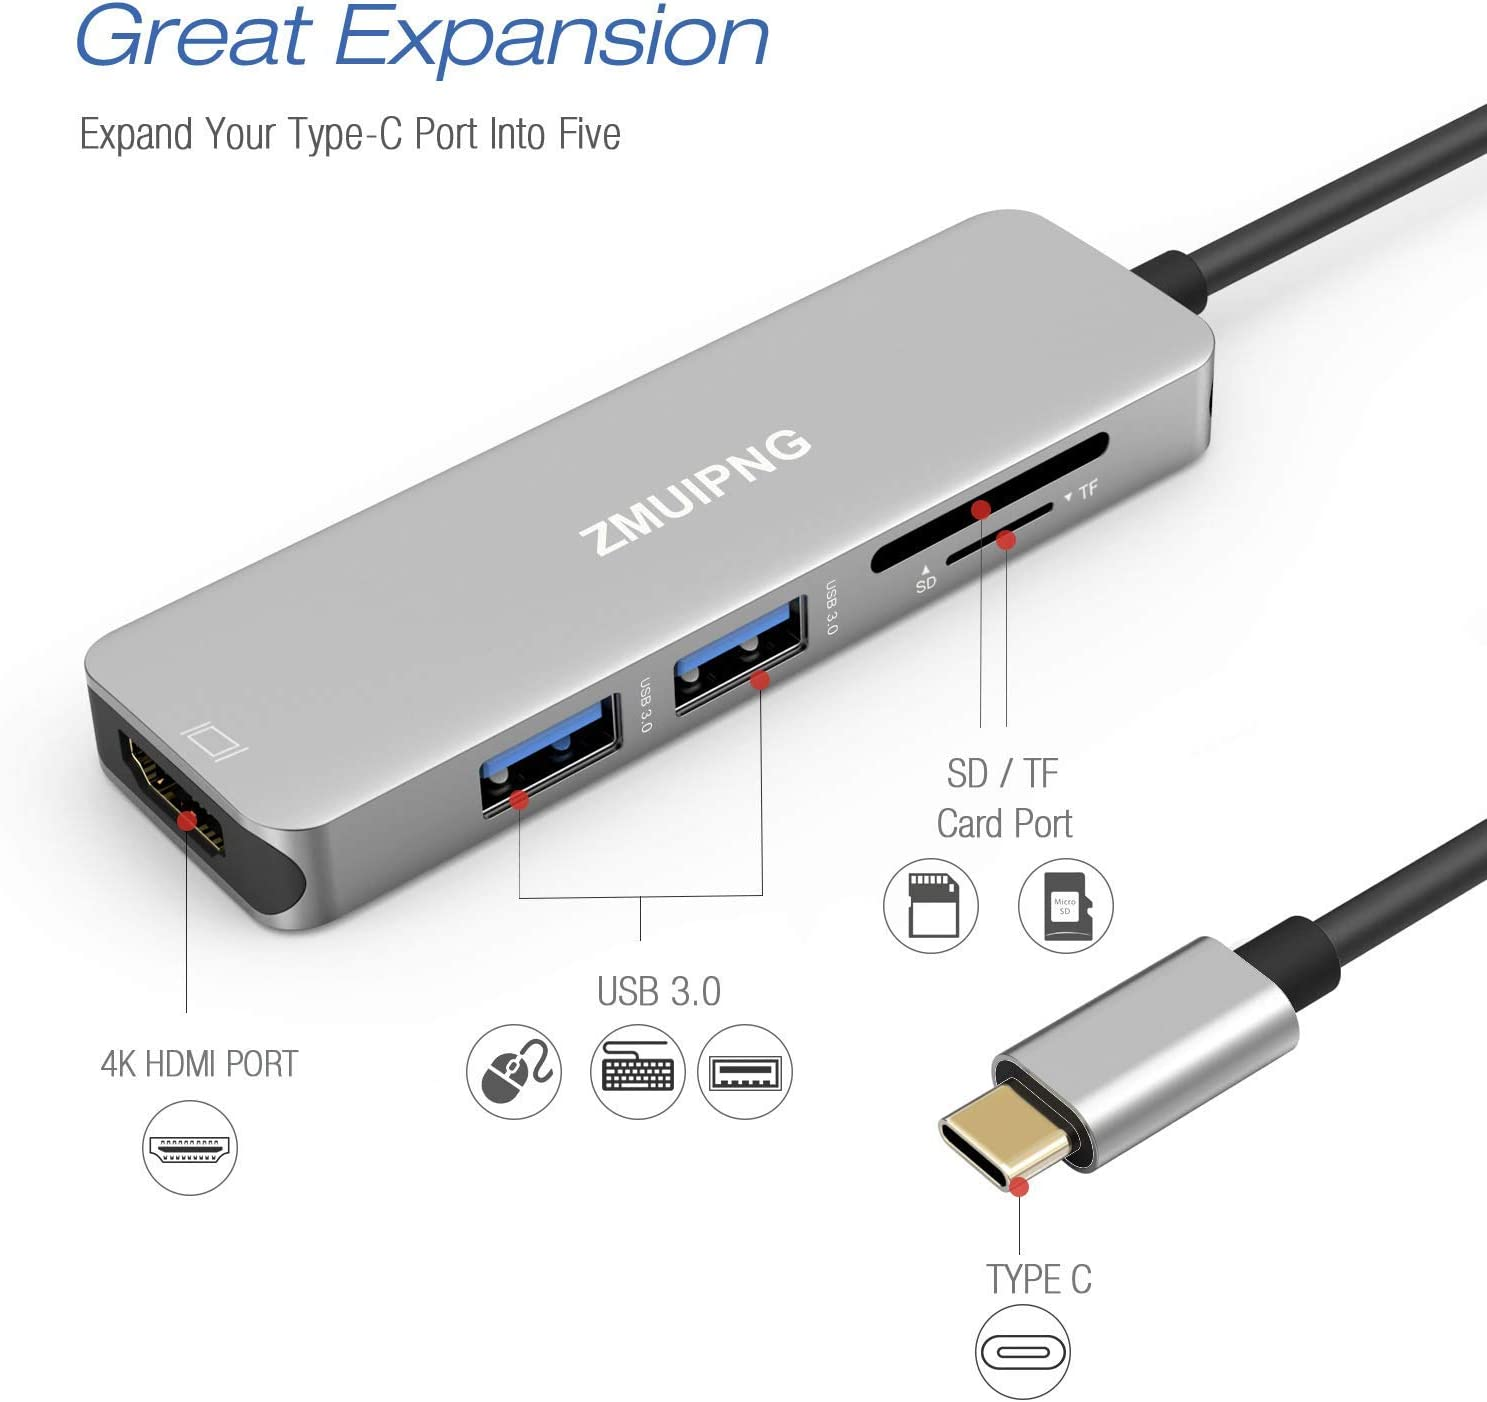 USB C Hub Adapter for Macbook Pro 2018/2019-2016,MacBook Air 2018-2019,Surface Go,5 in 1 USBC Type C Dongle with 4K HDMI, 2 USB 3.0 Ports,SD/Micro SD ...